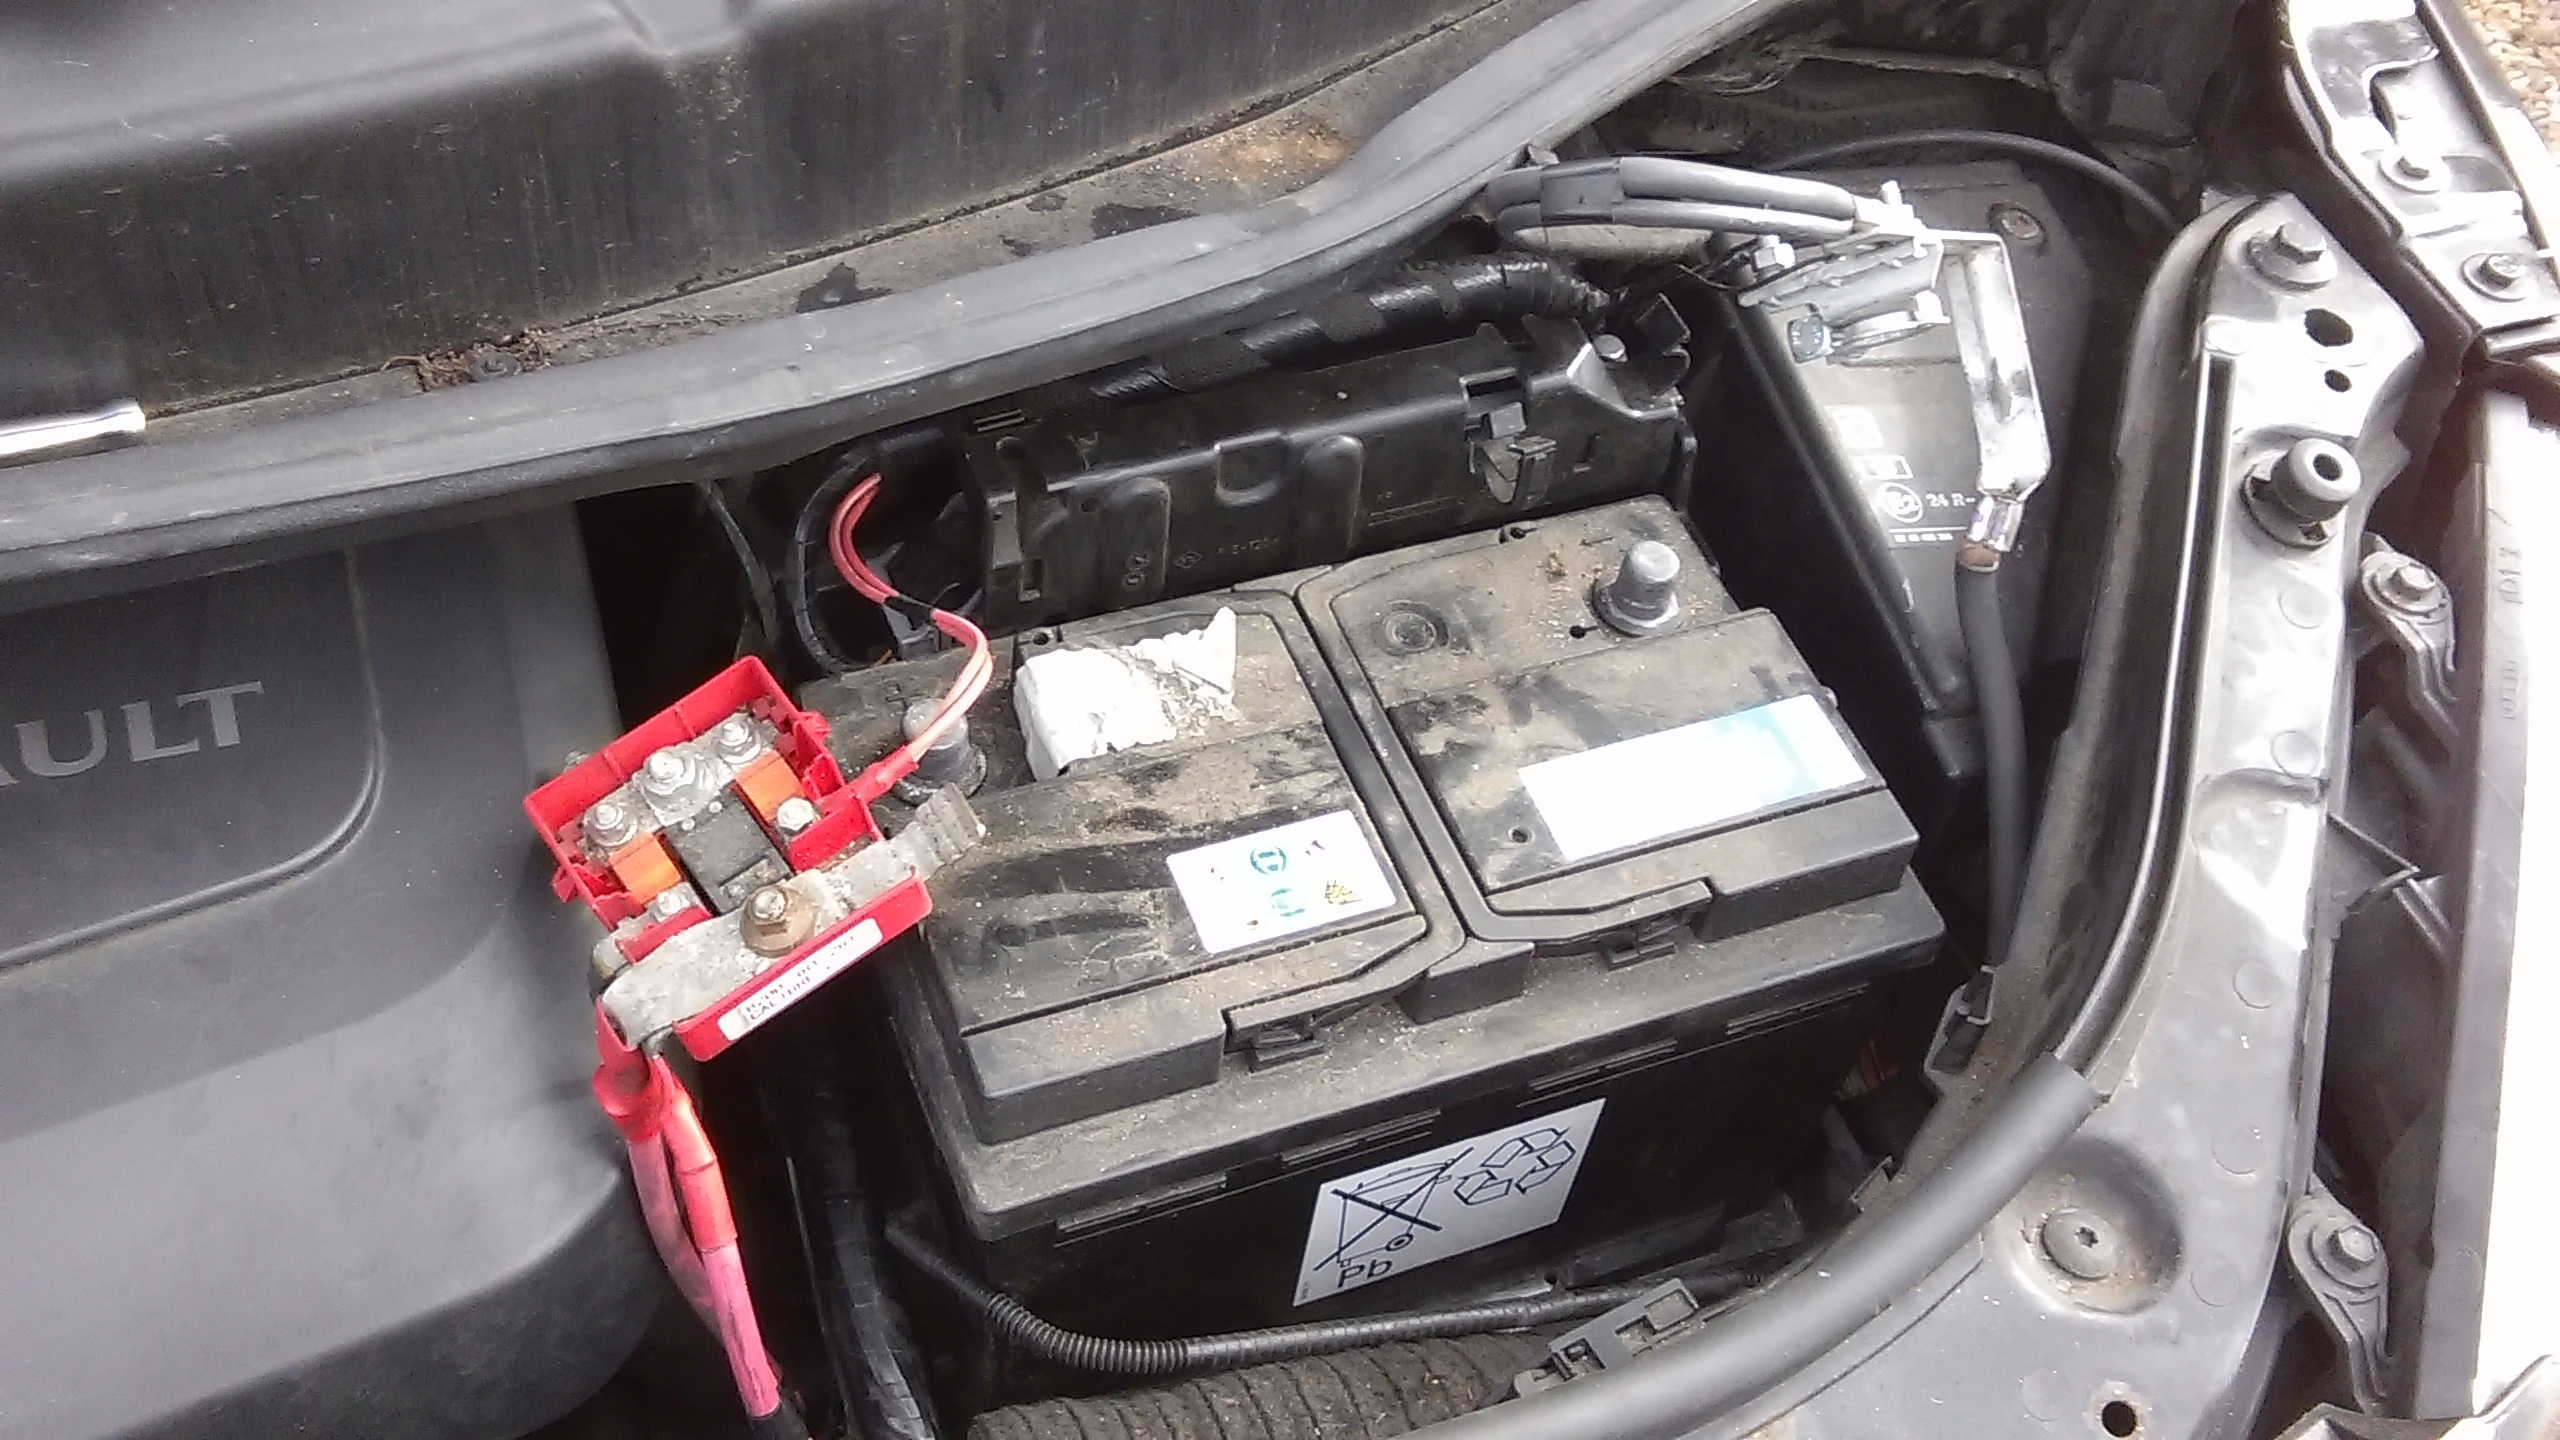 Renault Megane 2005 Engine Bay Fuse Box : Renault kangoo engine bay fuse box wiring diagram